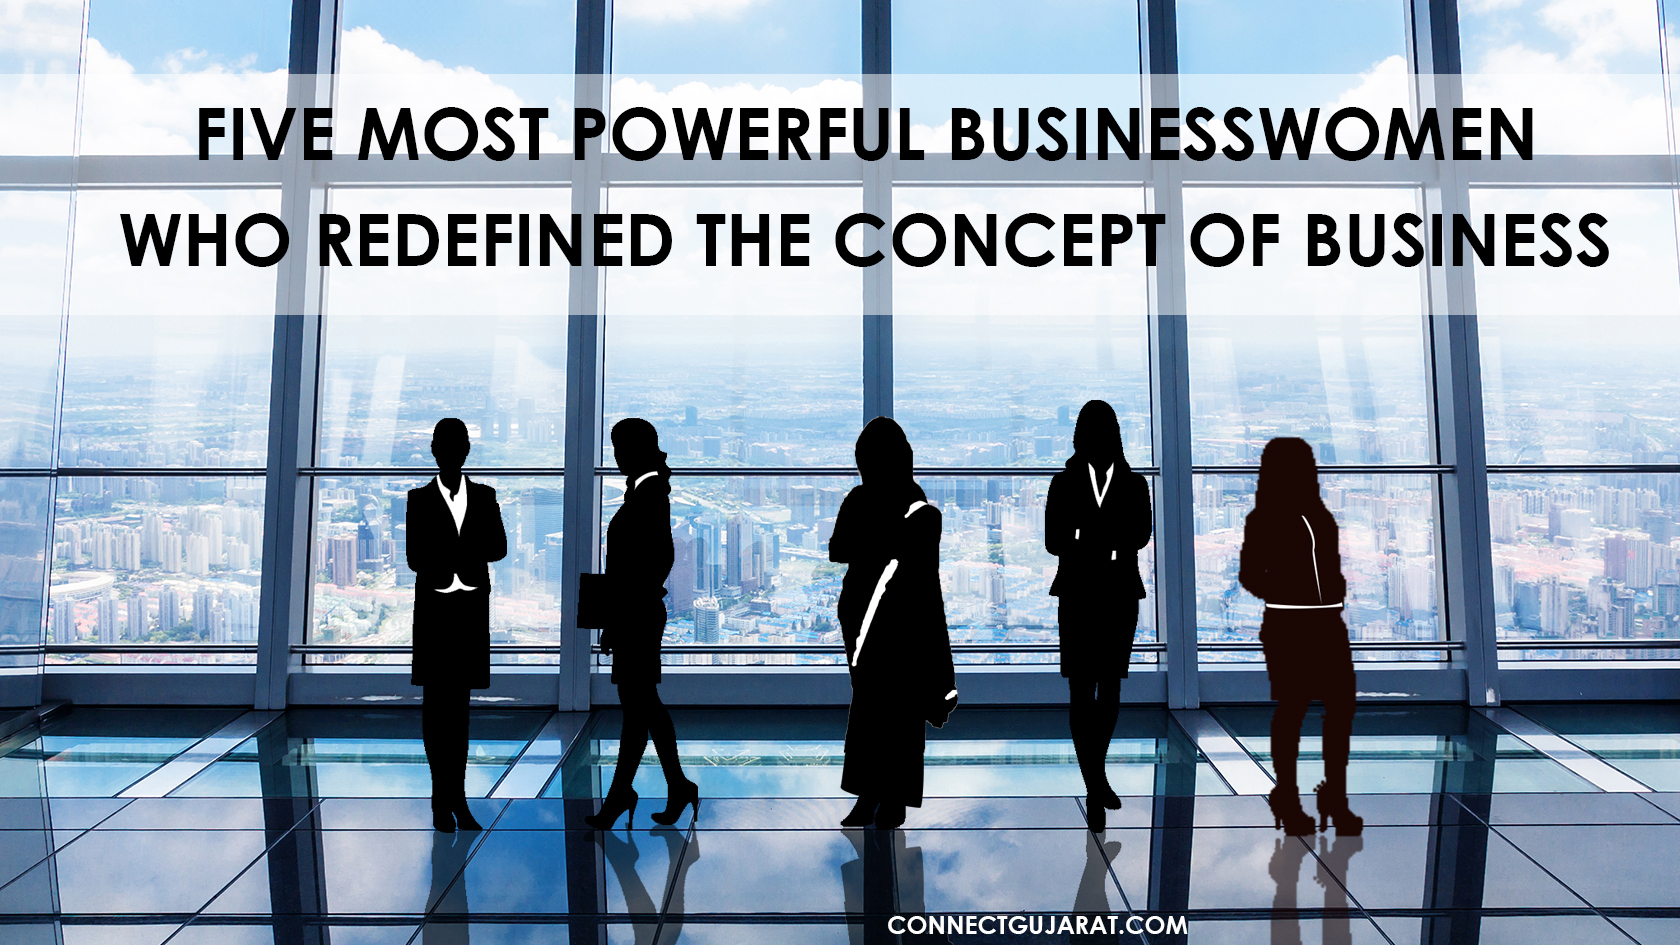 Five most powerful business women who redefined the concept of business